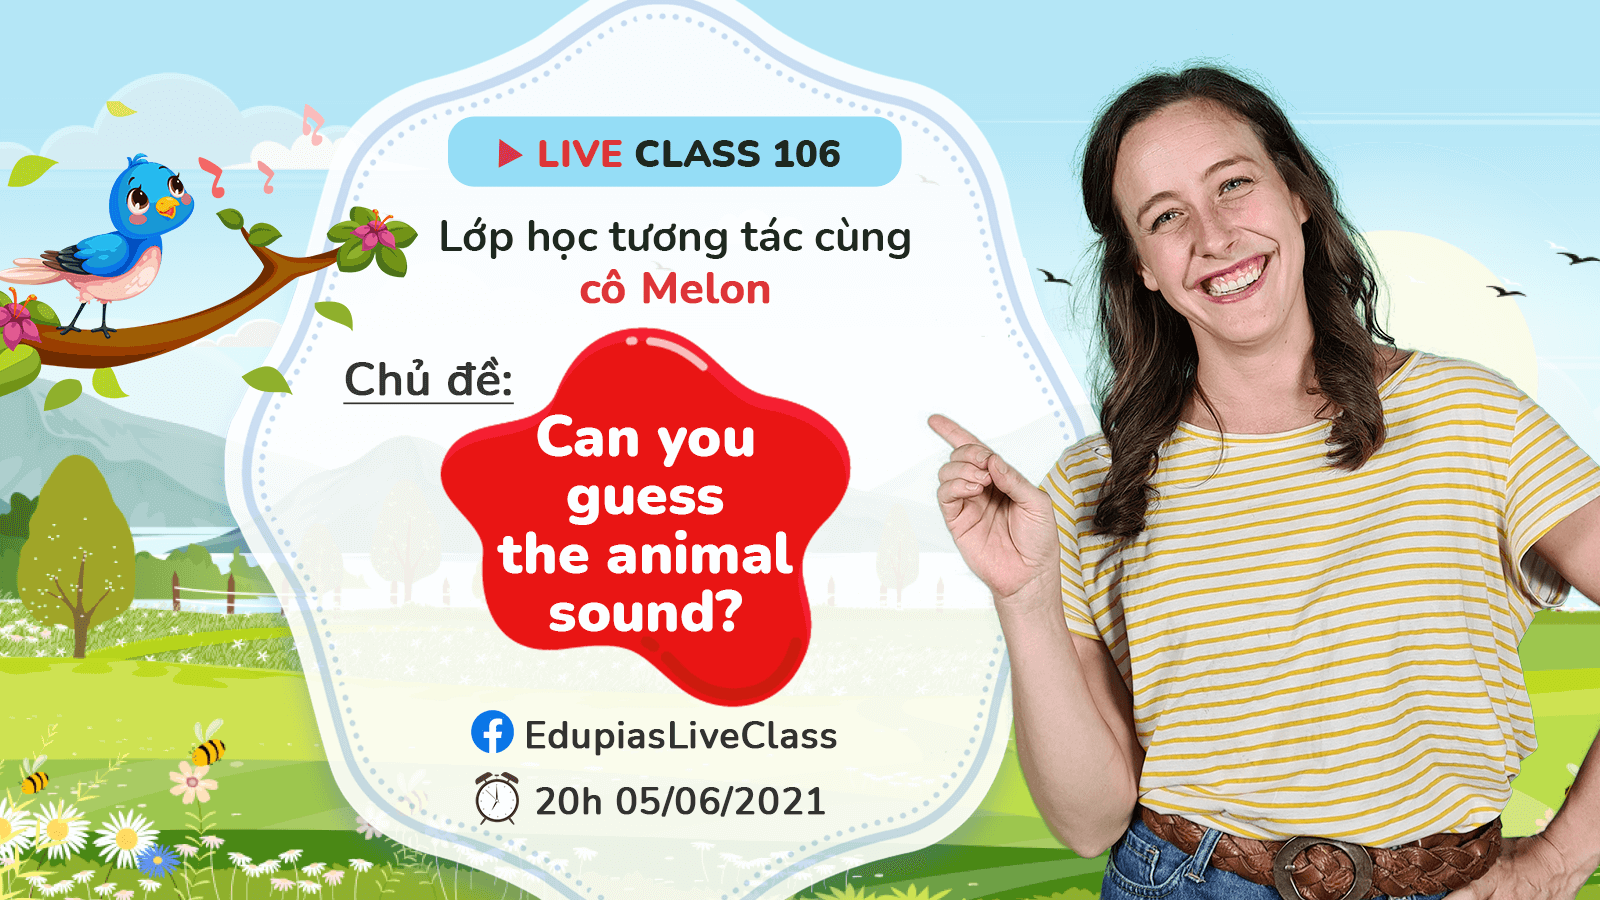 Live class tuần 106 - Chủ đề: Can you guess the animal sound?